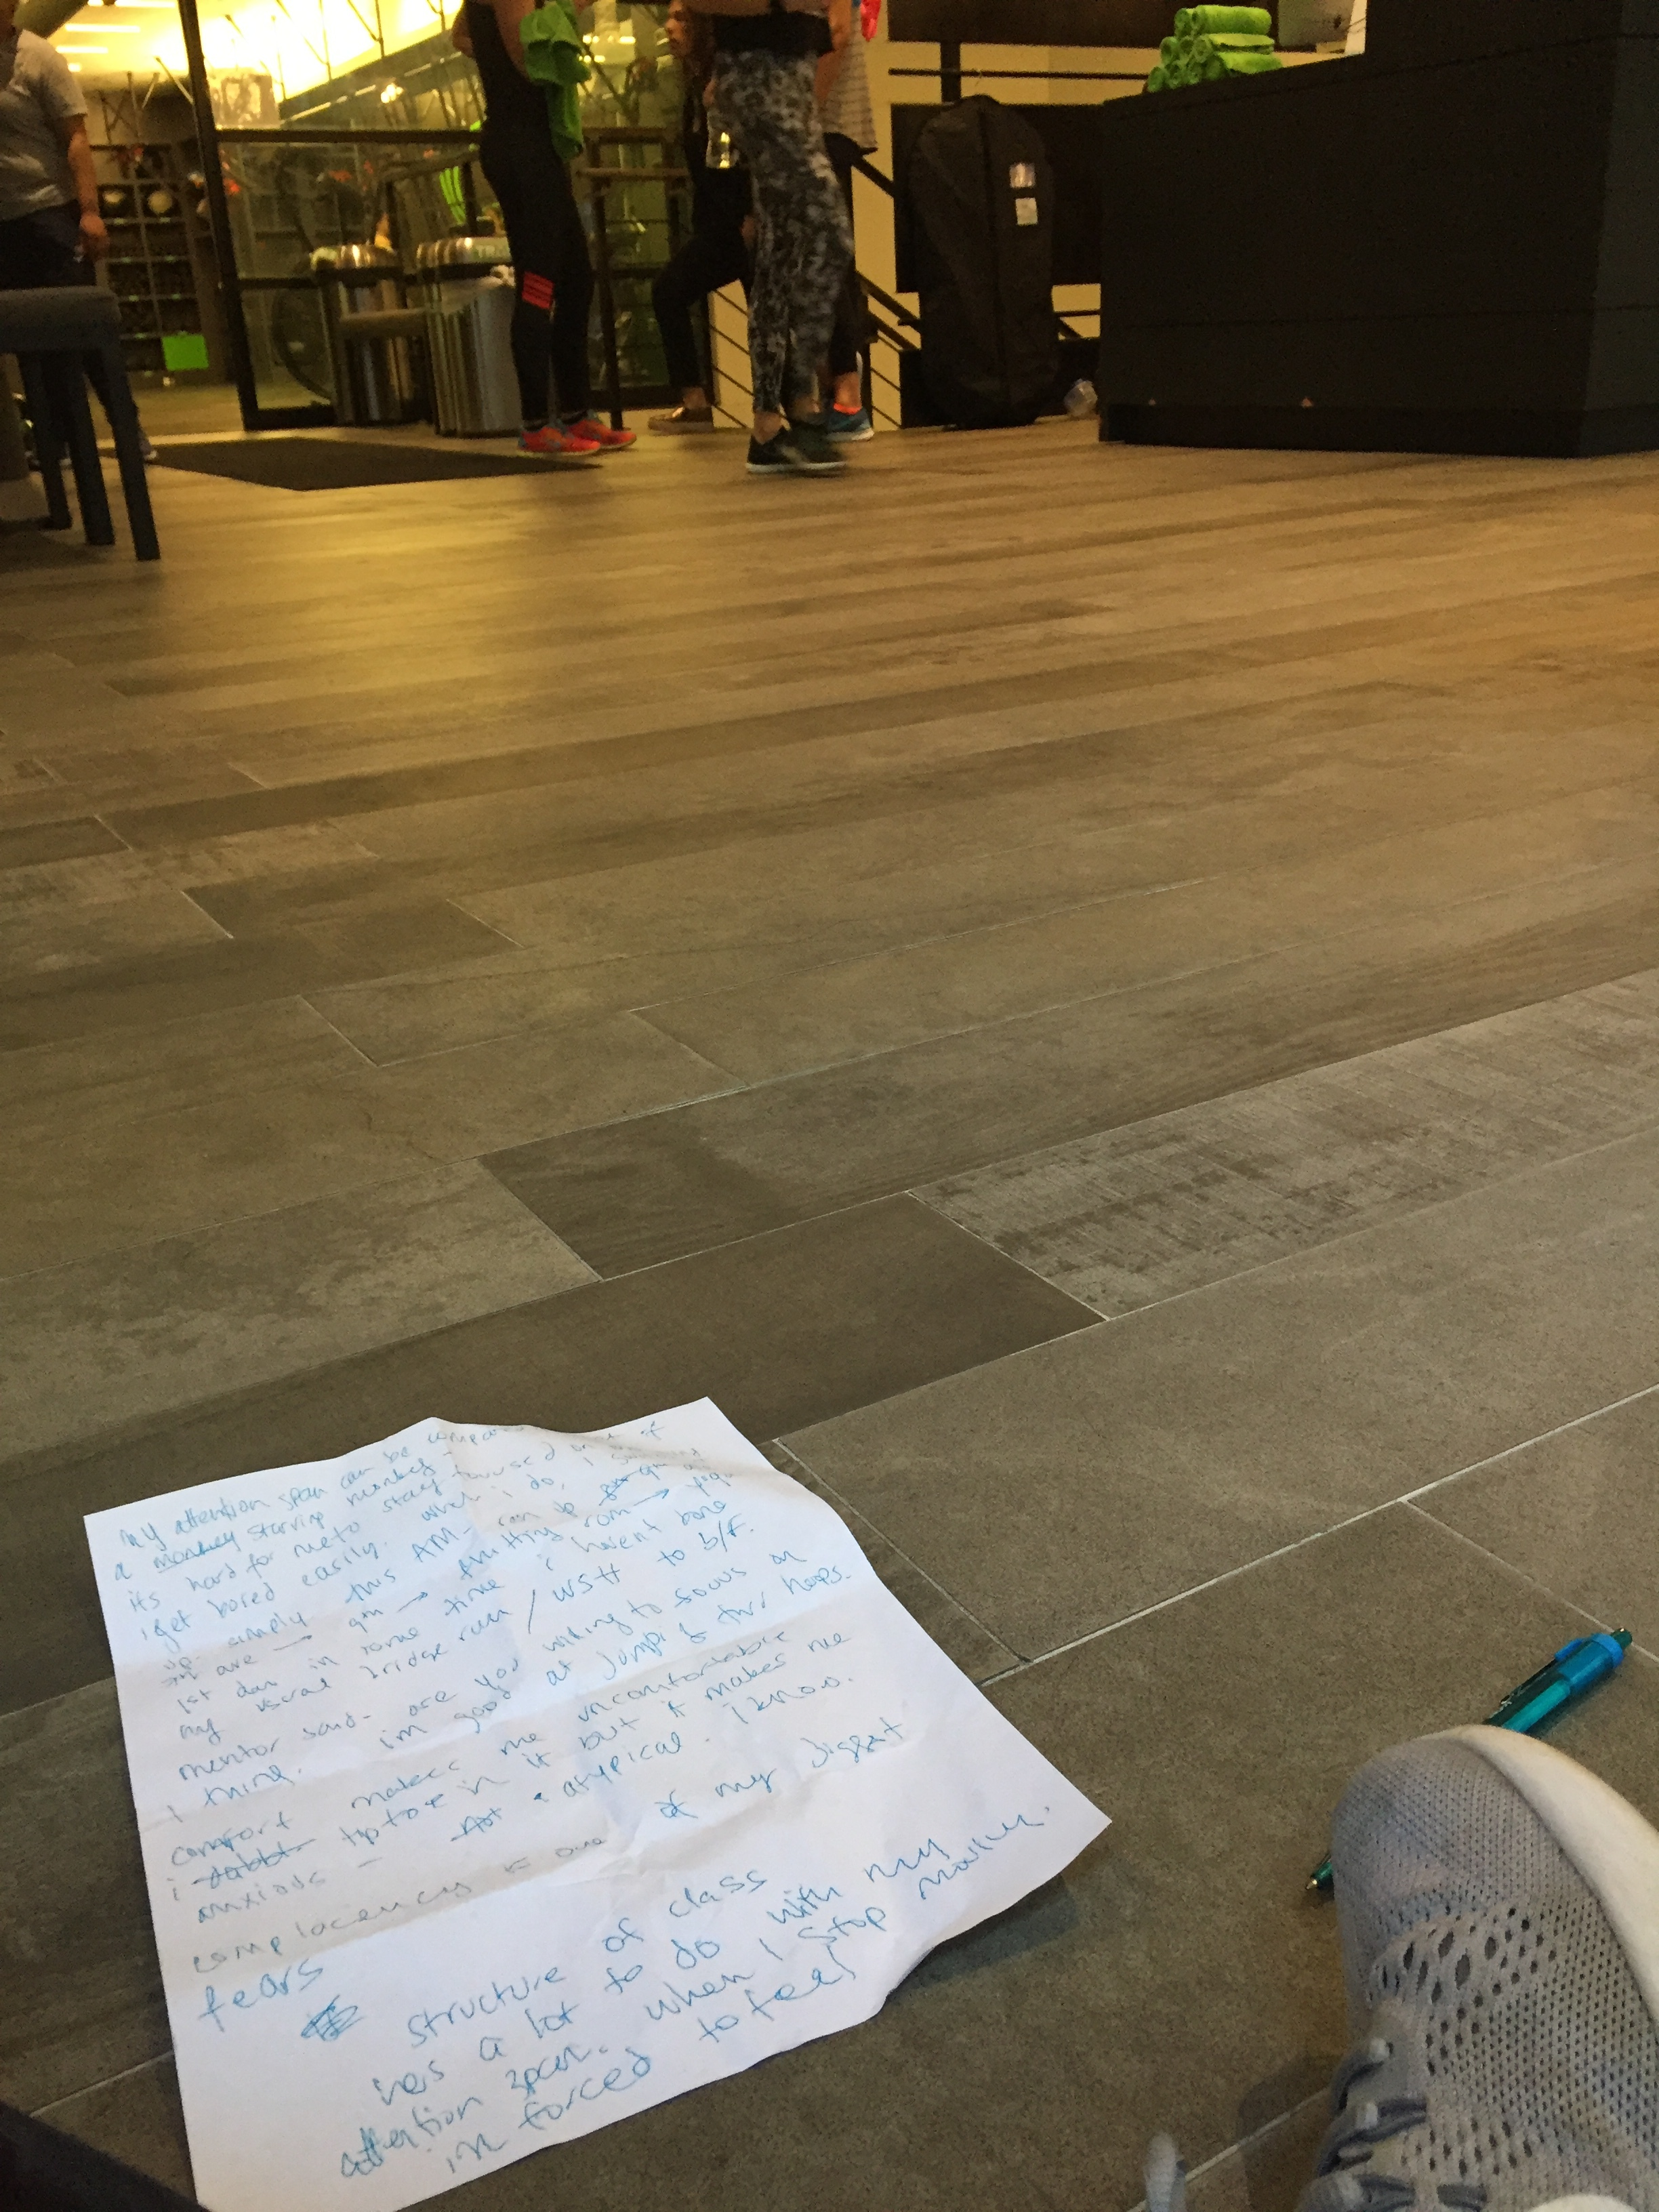 sitting on the fhitting room floor before class, writing all my mid-running thoughts